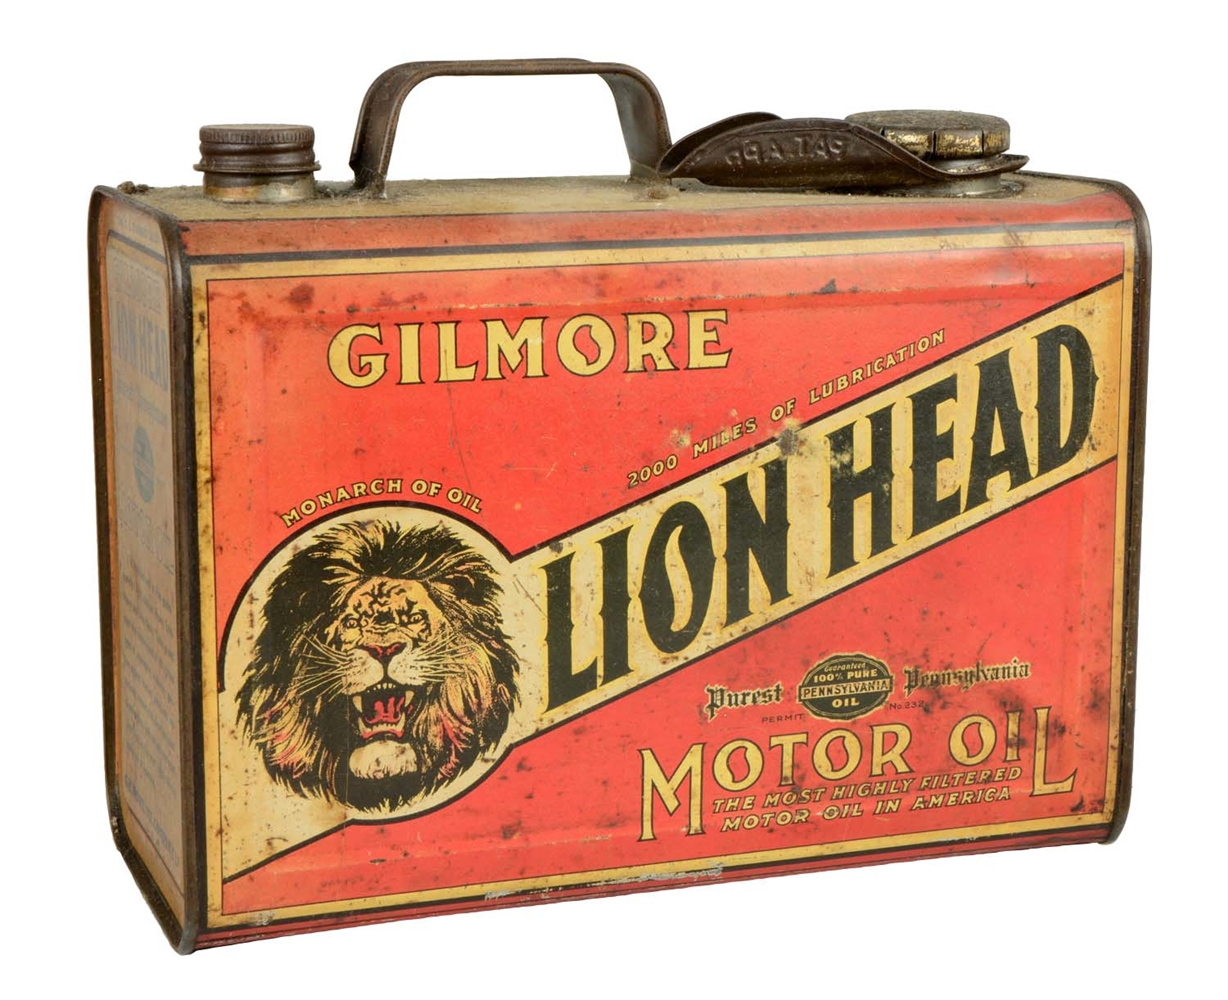 Gilmore Lion Head One Gallon Can.